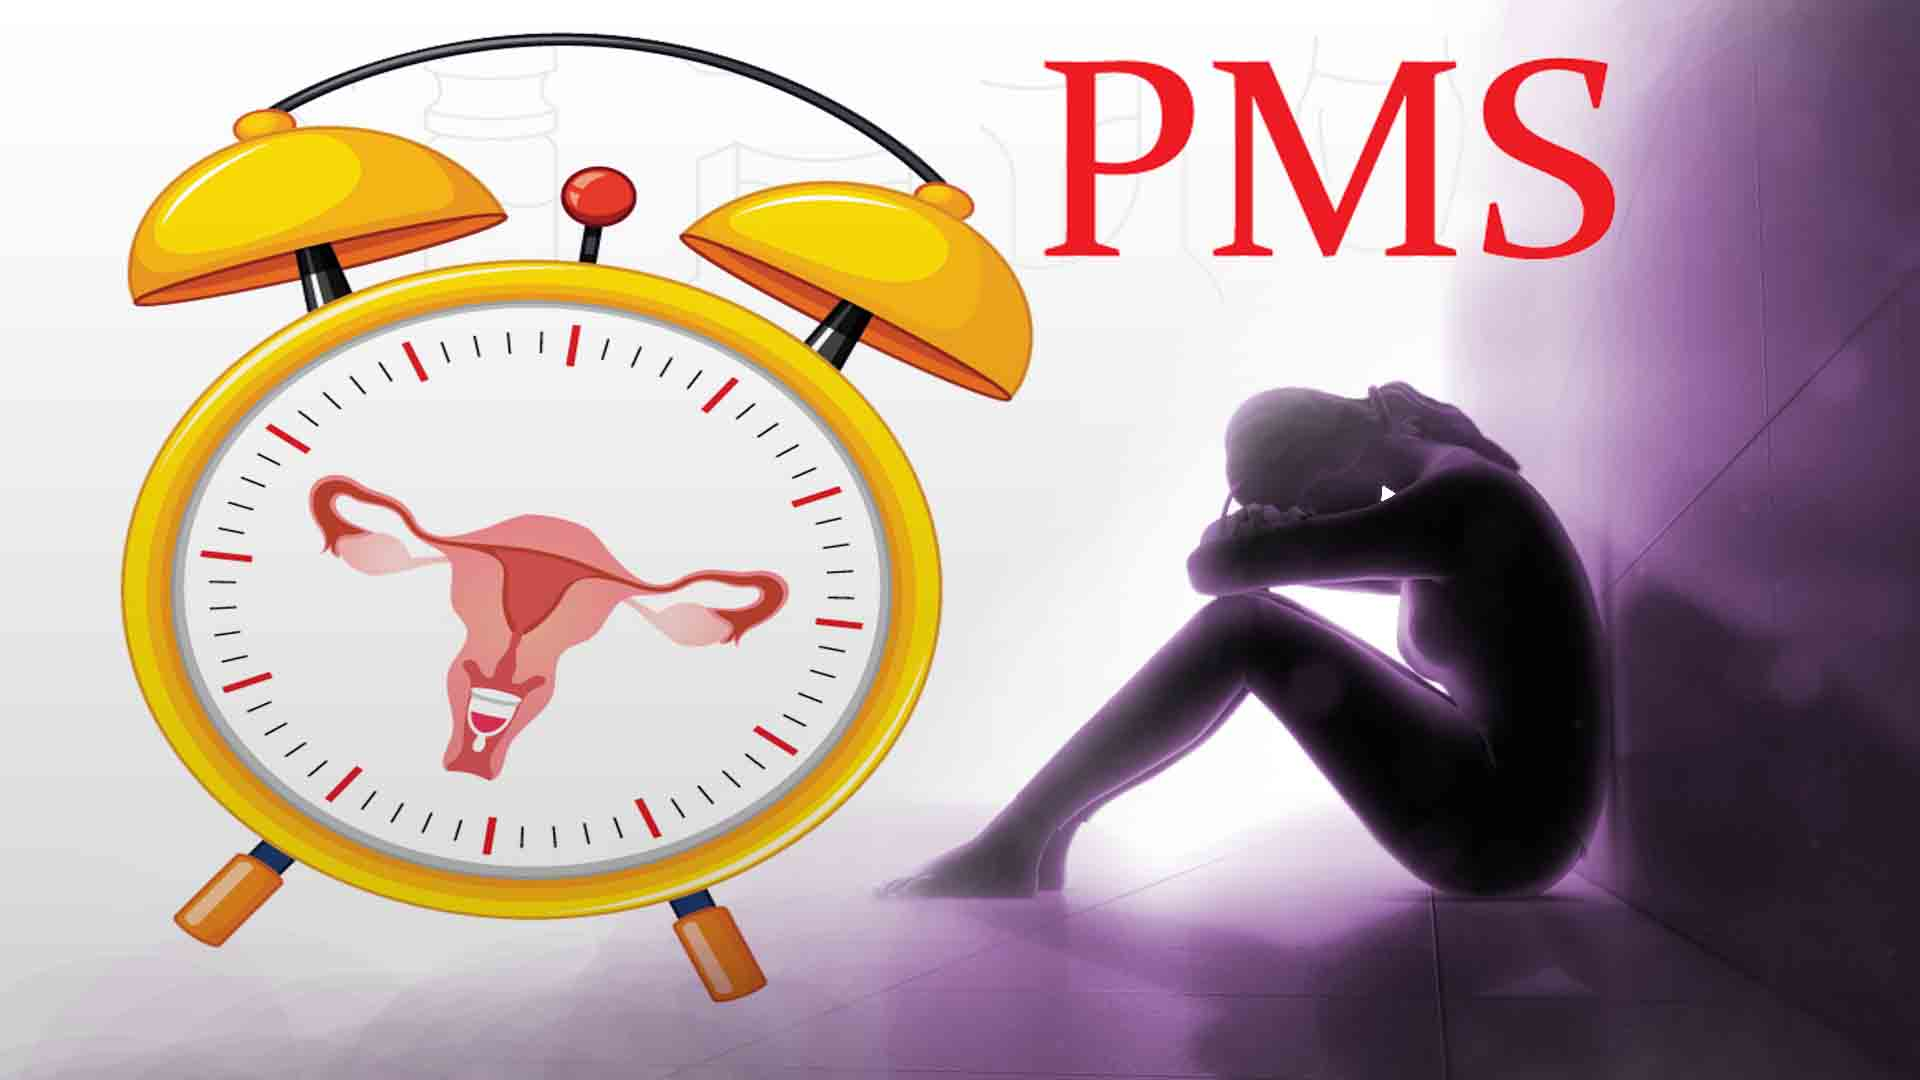 PMS: Lack of Awareness or A Misconception